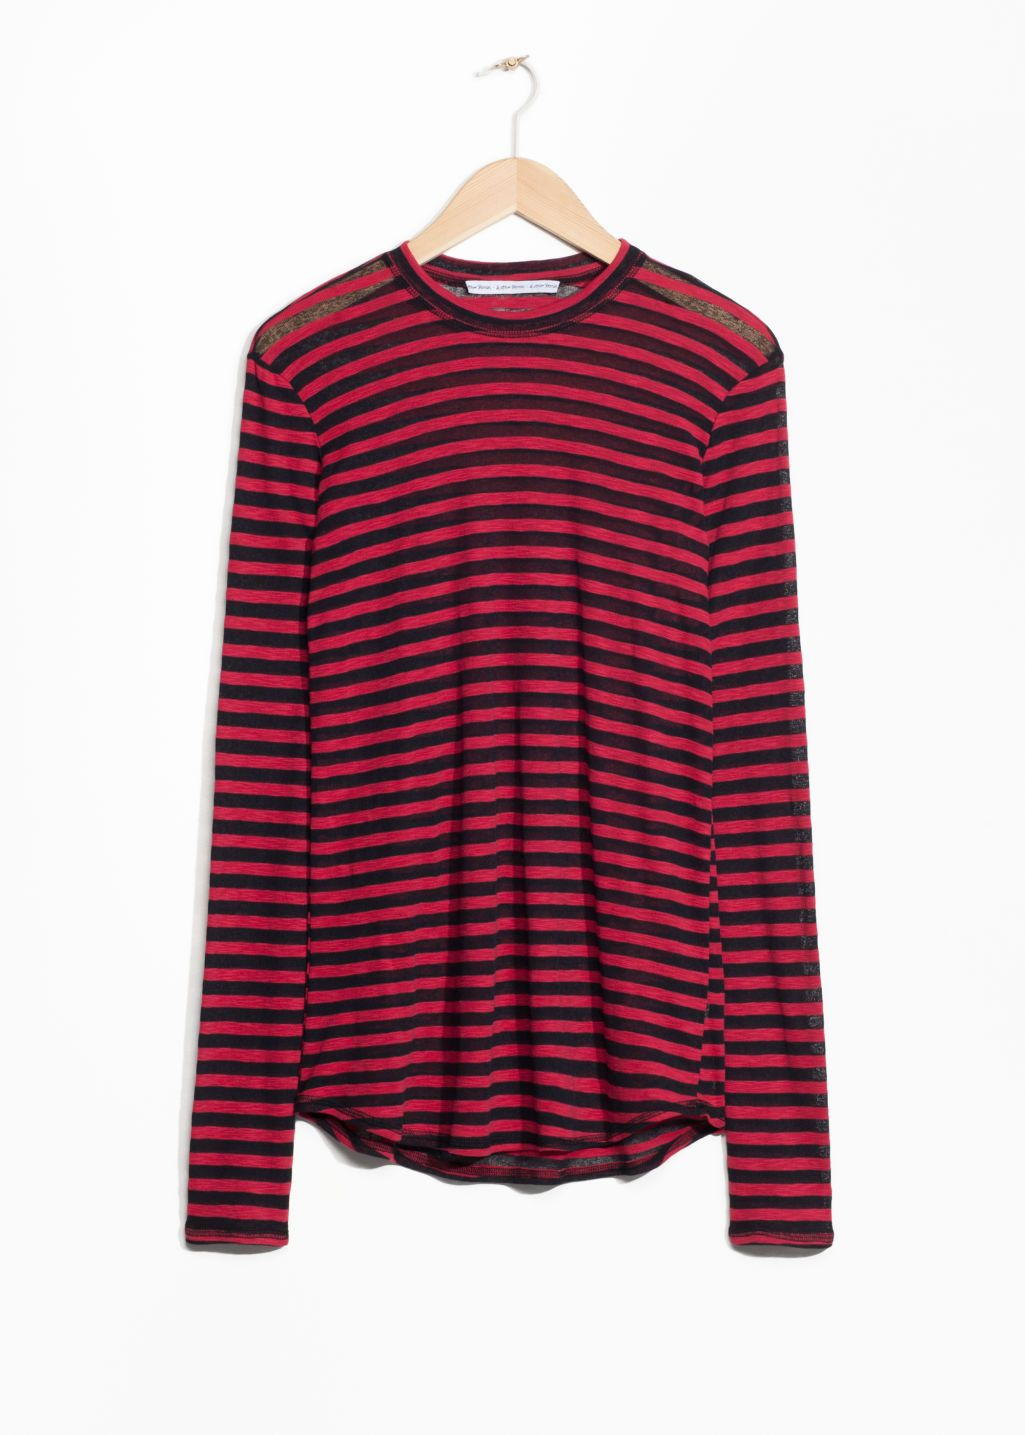 827d5fcc65757 Slightly Sheer Red Black striped top from   Other Stories